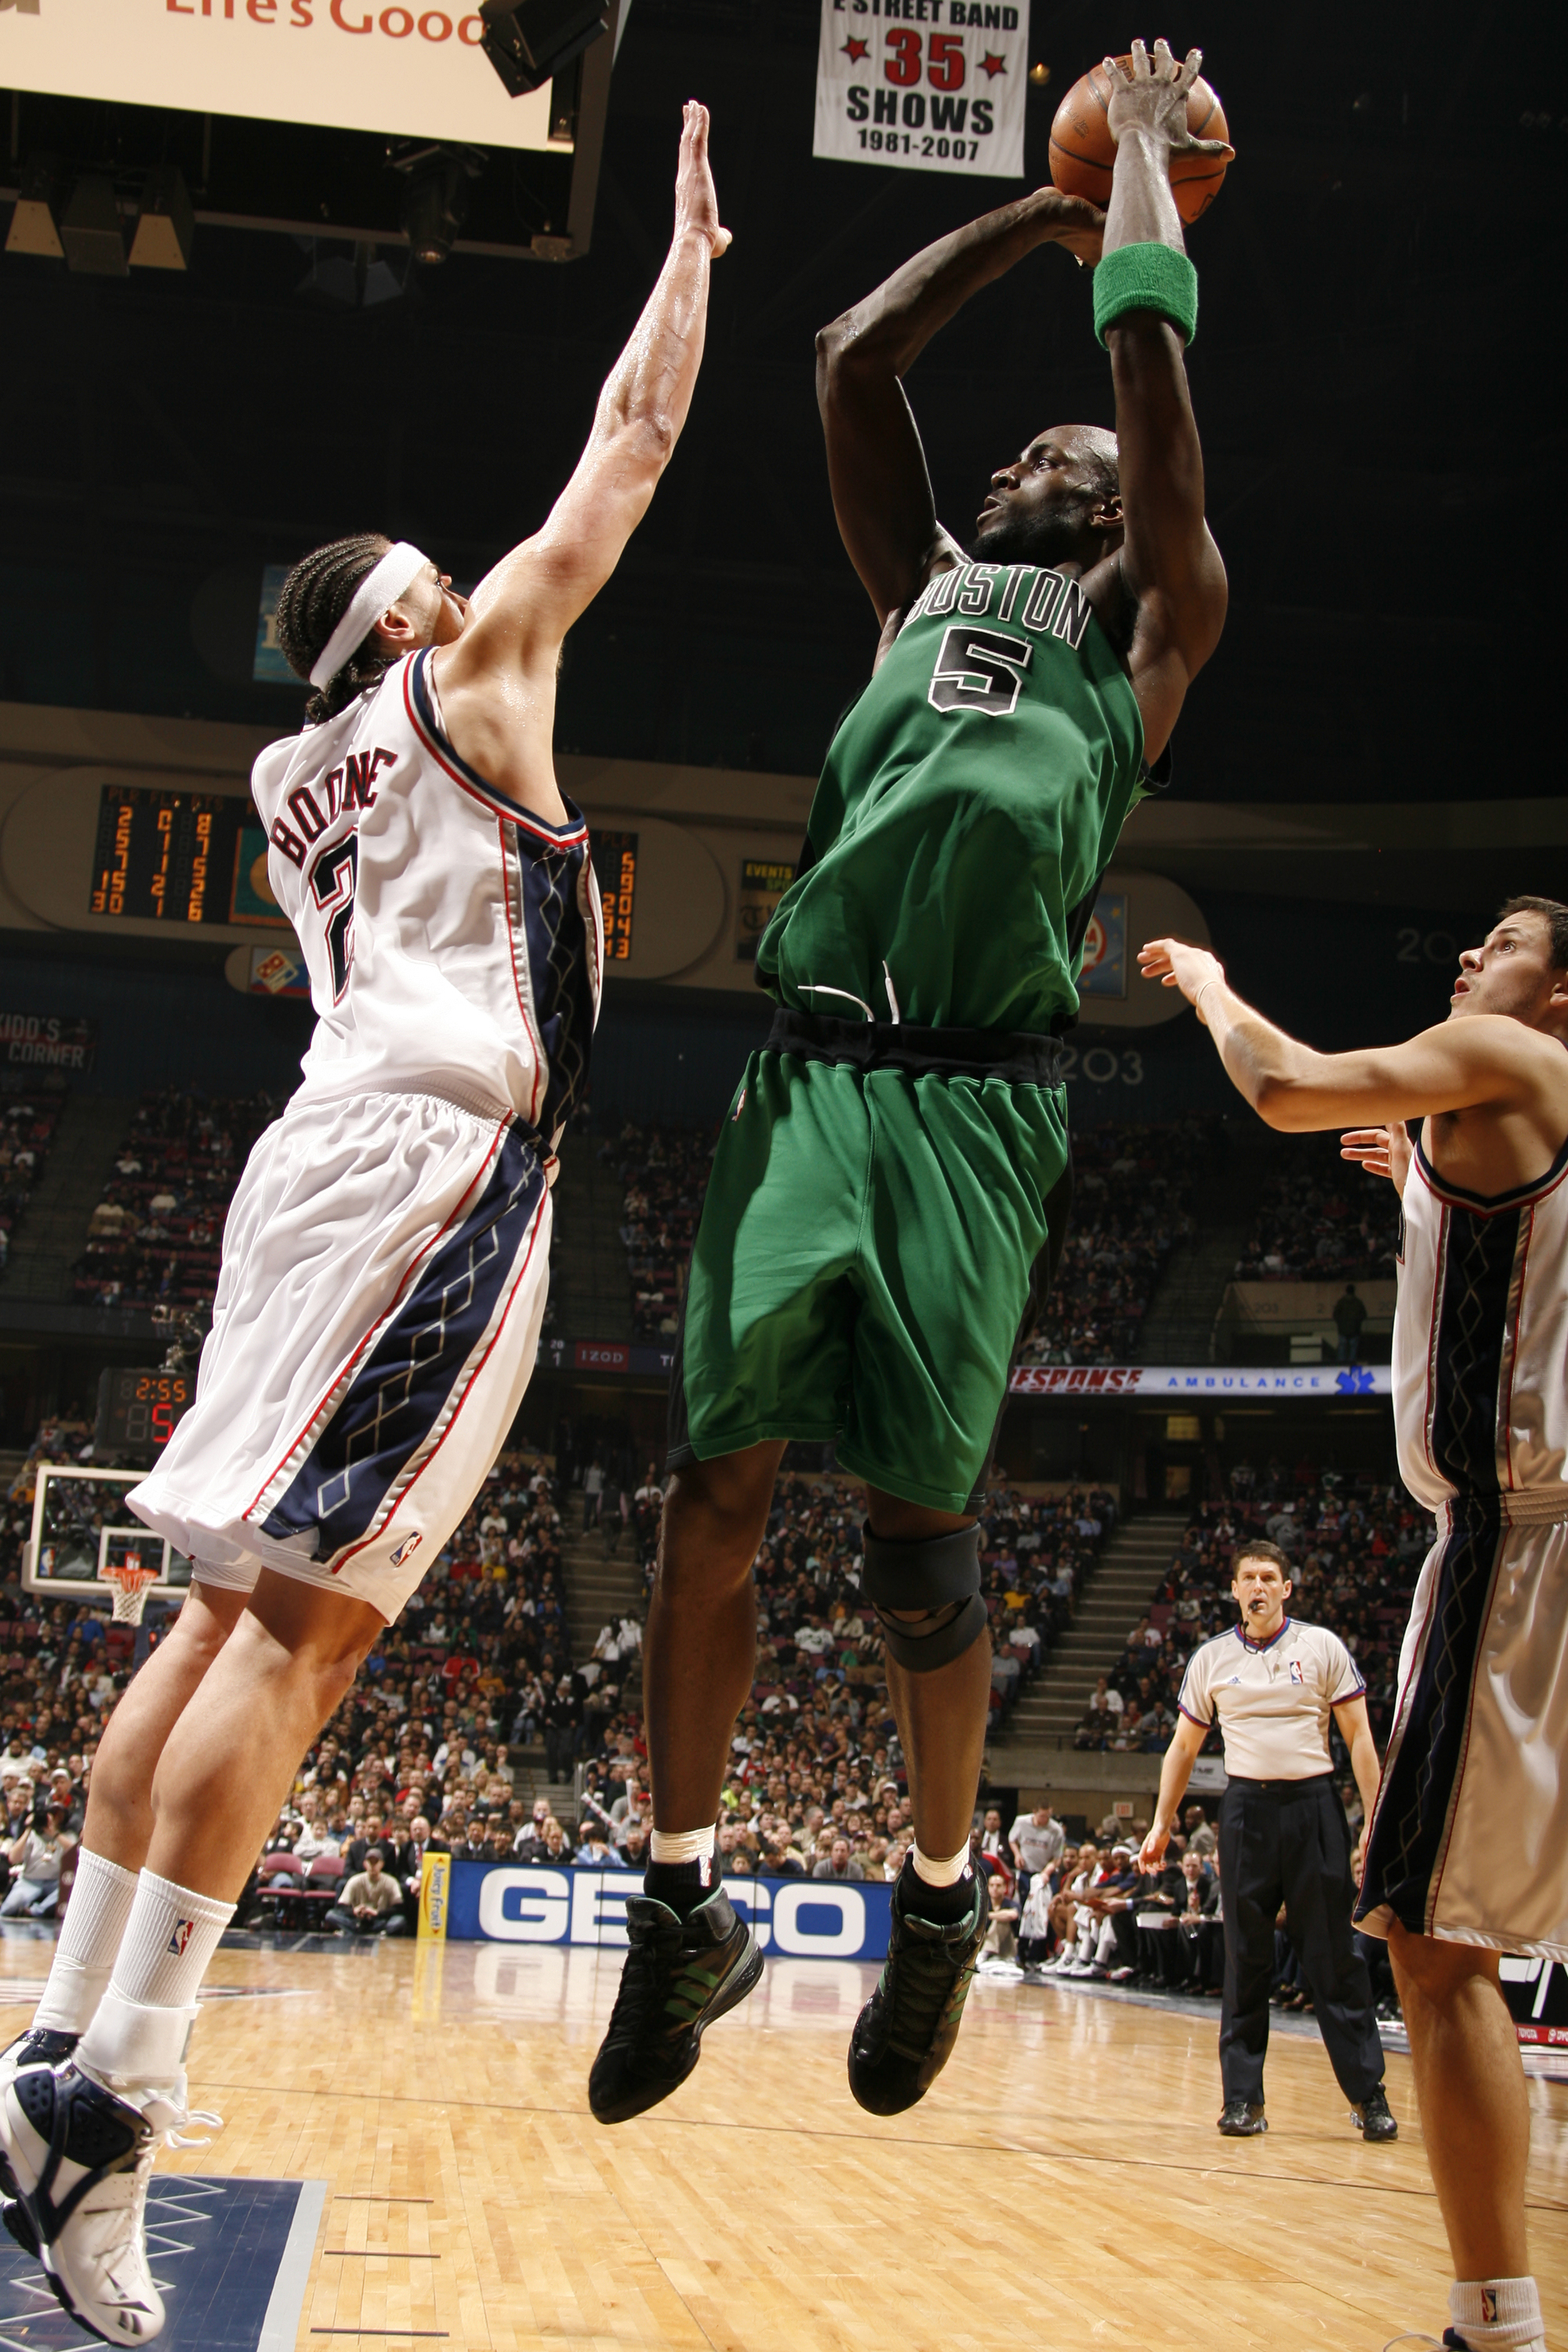 Kevin Garnett being awesome